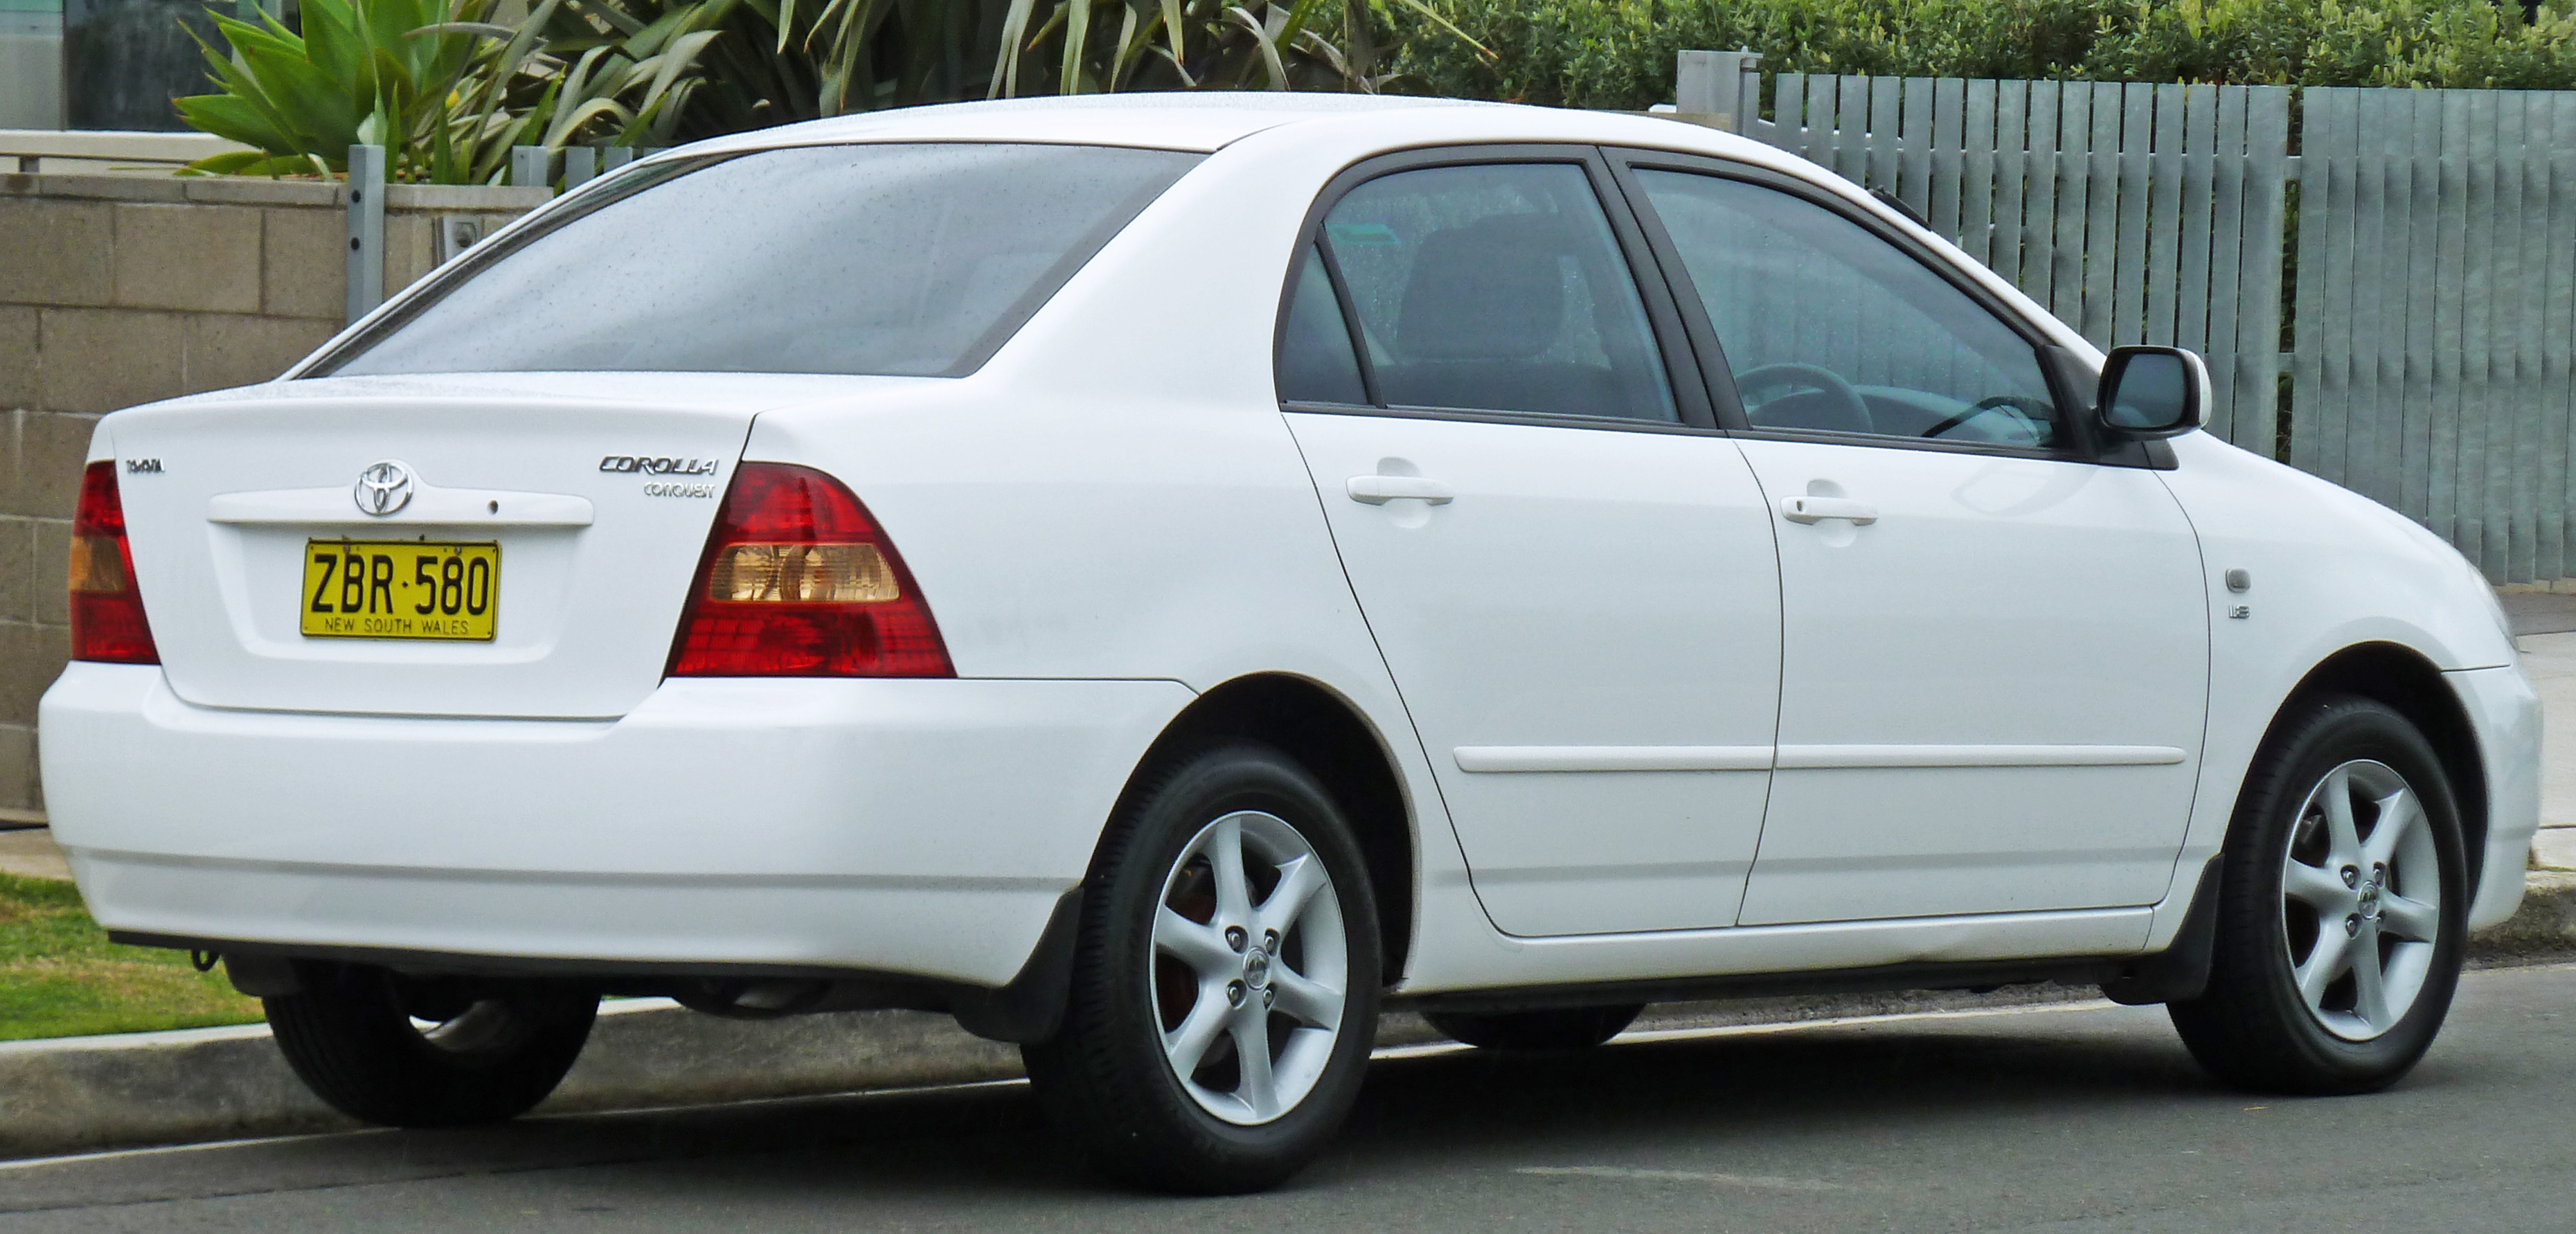 Toyota corolla 2000 exterior rear side view